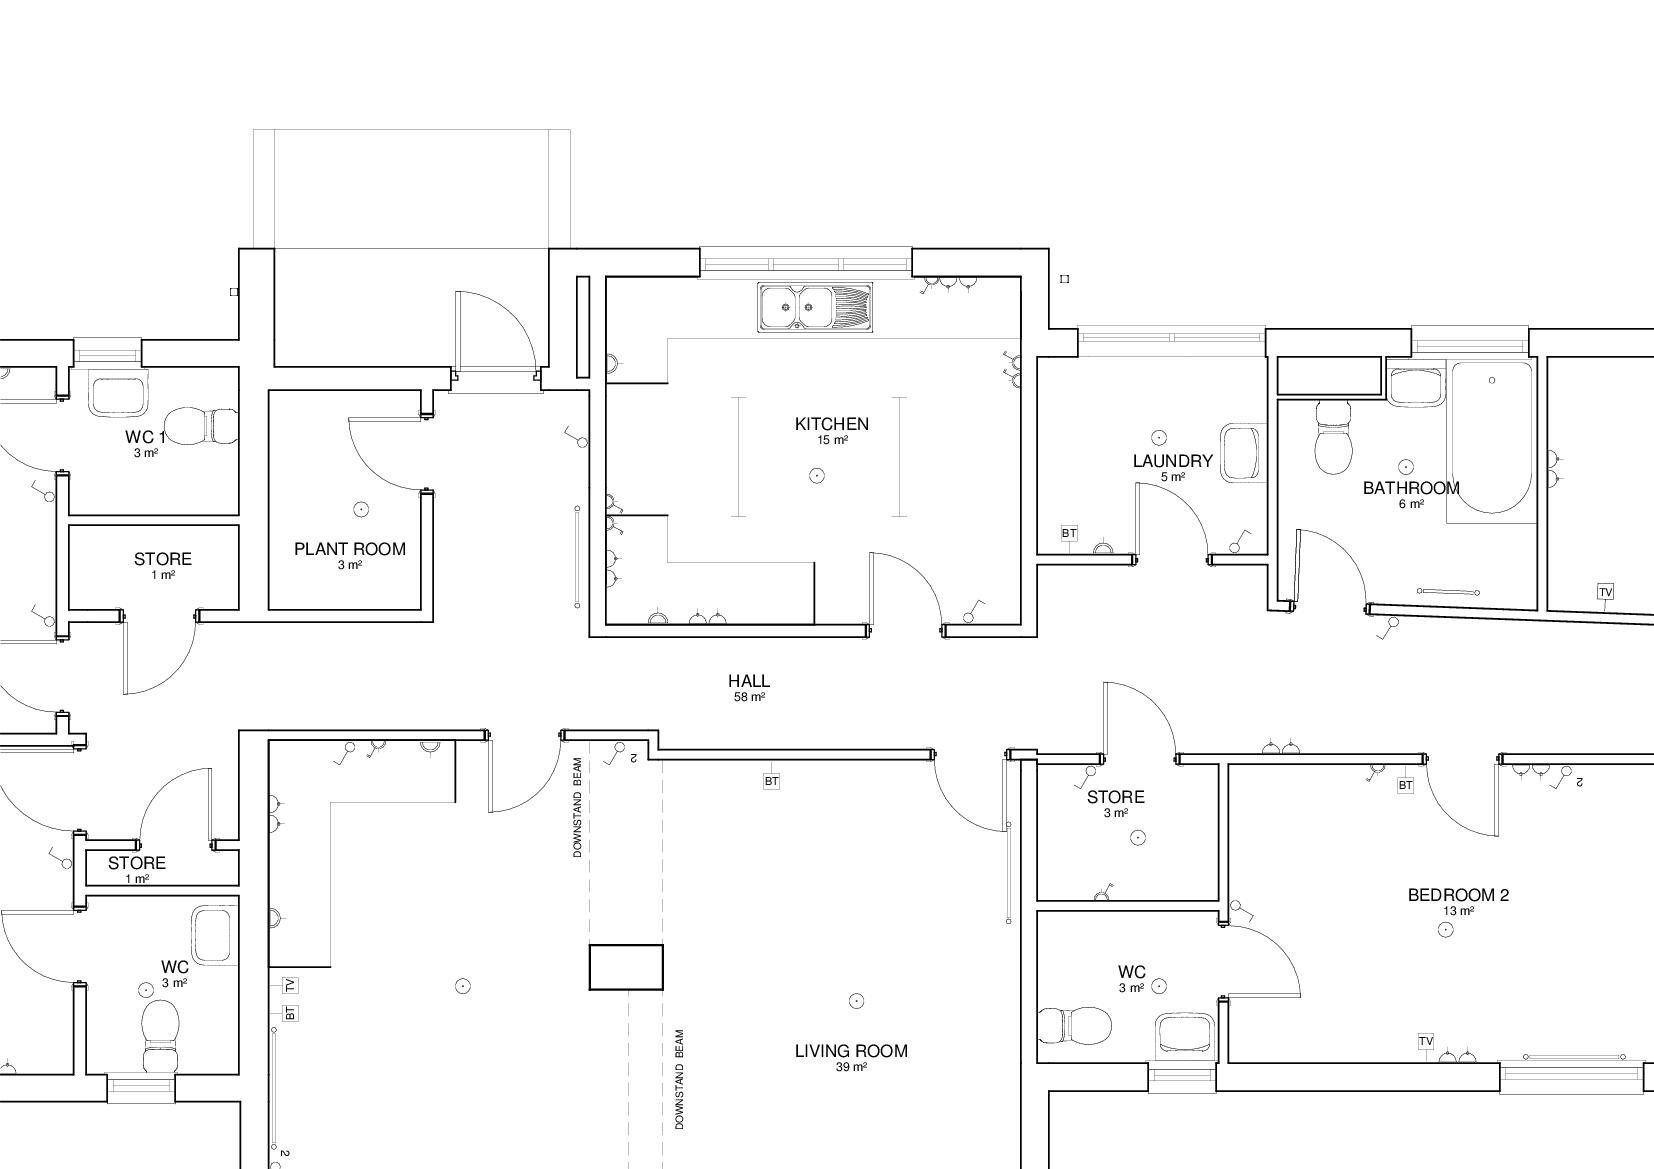 Solved Light Fittings Smoke Detectors Not Showing On Plan Autodesk Community Revit Products